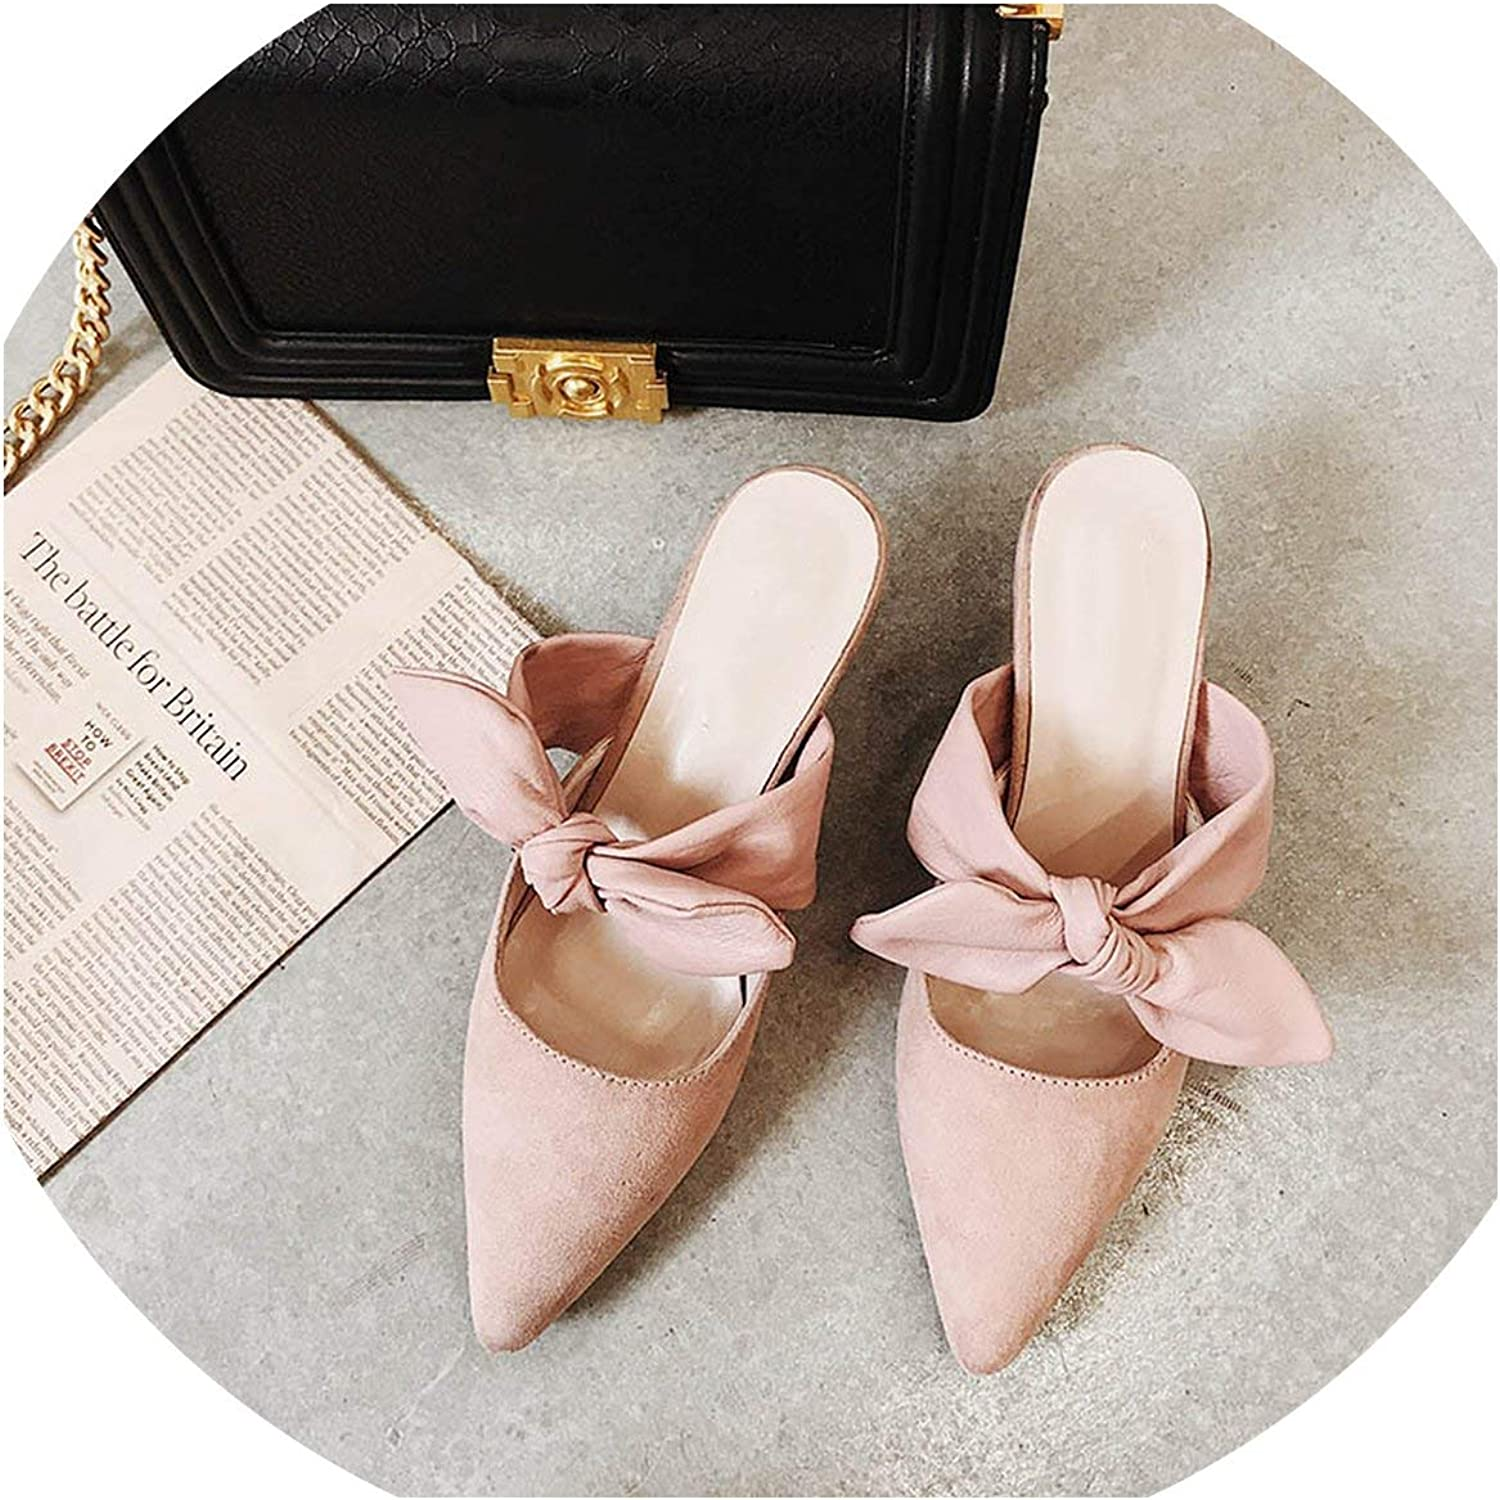 I Need-You Mules Women 5cm Platform Pointed Toe Bowknot Slippers shoes Comfortable Casual Female shoes Woman Flock women